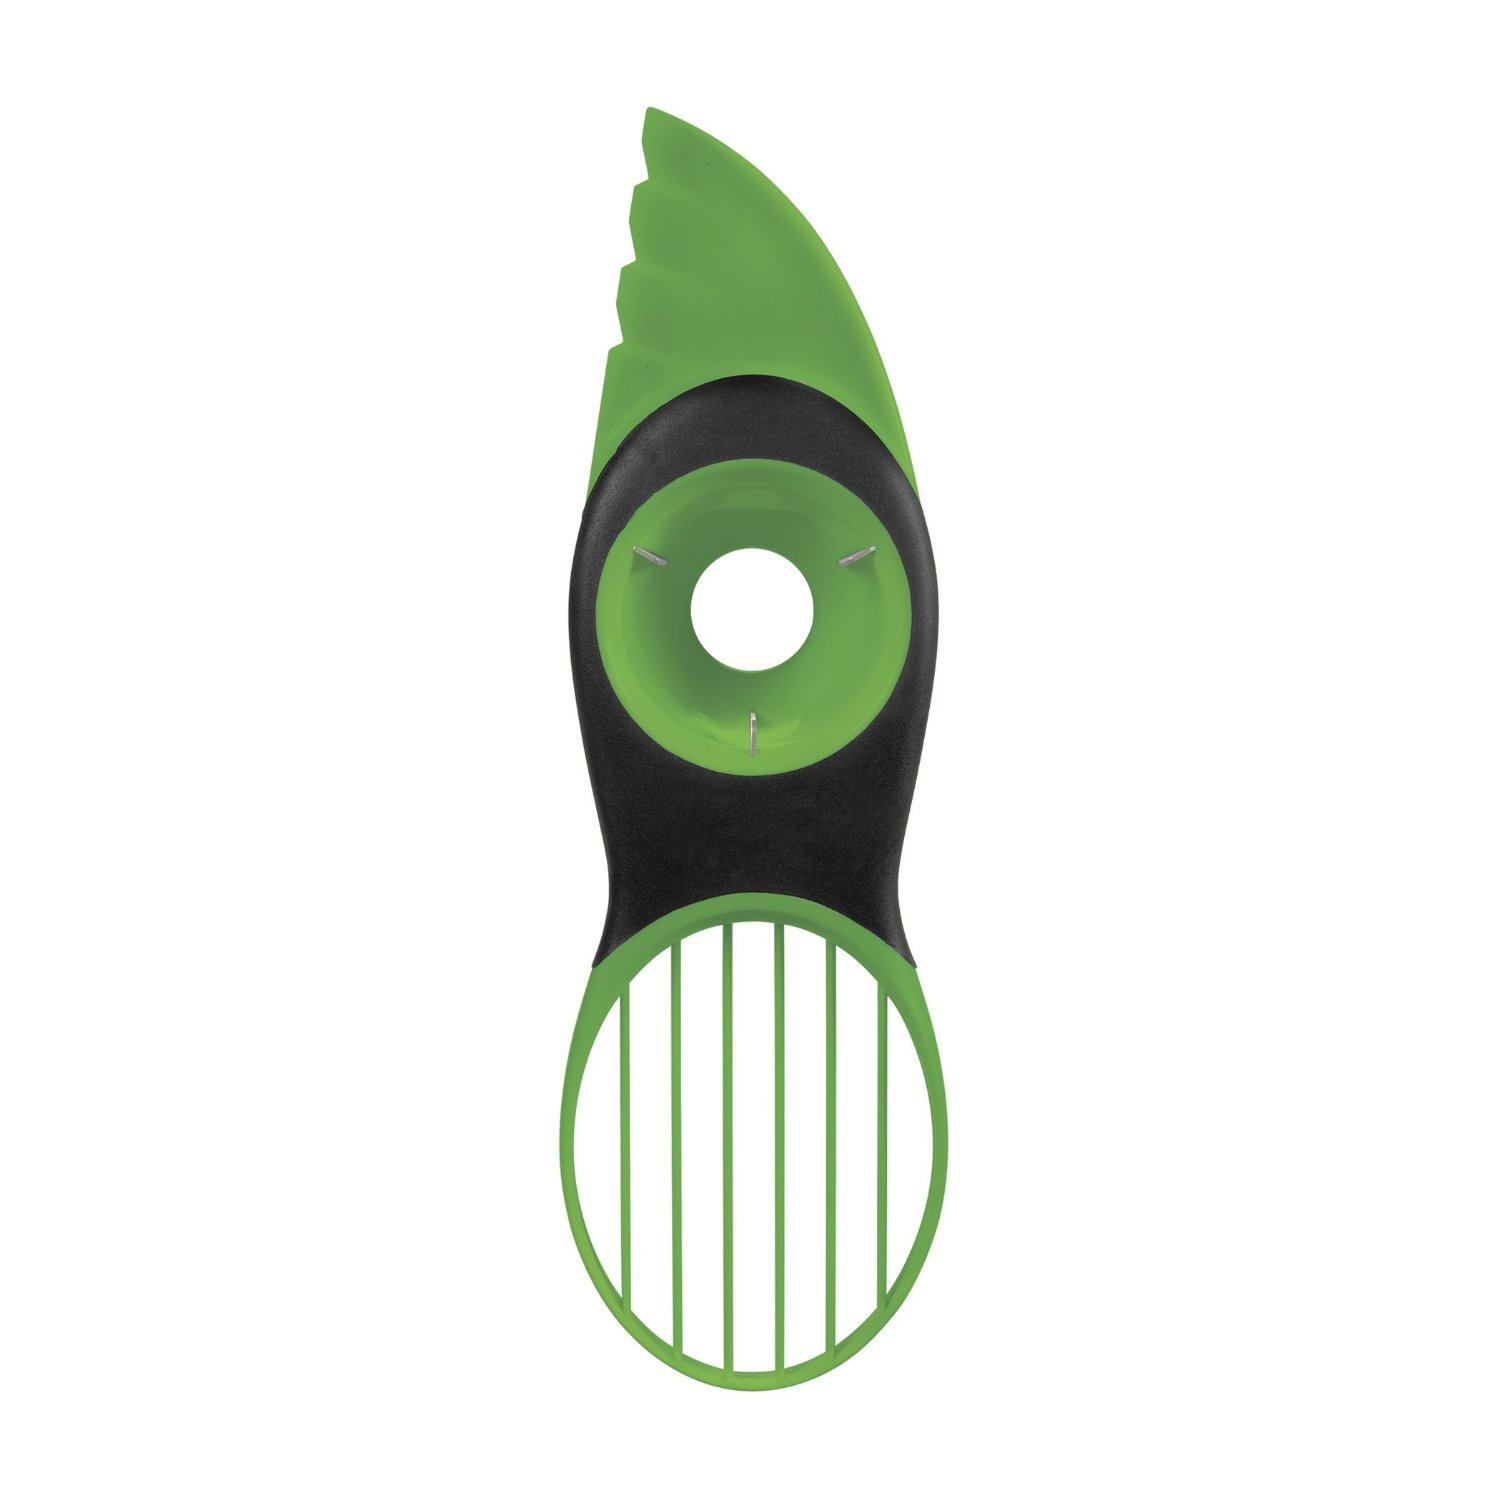 3-in-1 Avocado Slicer Plastic Fruit Pitter Cooking Tools